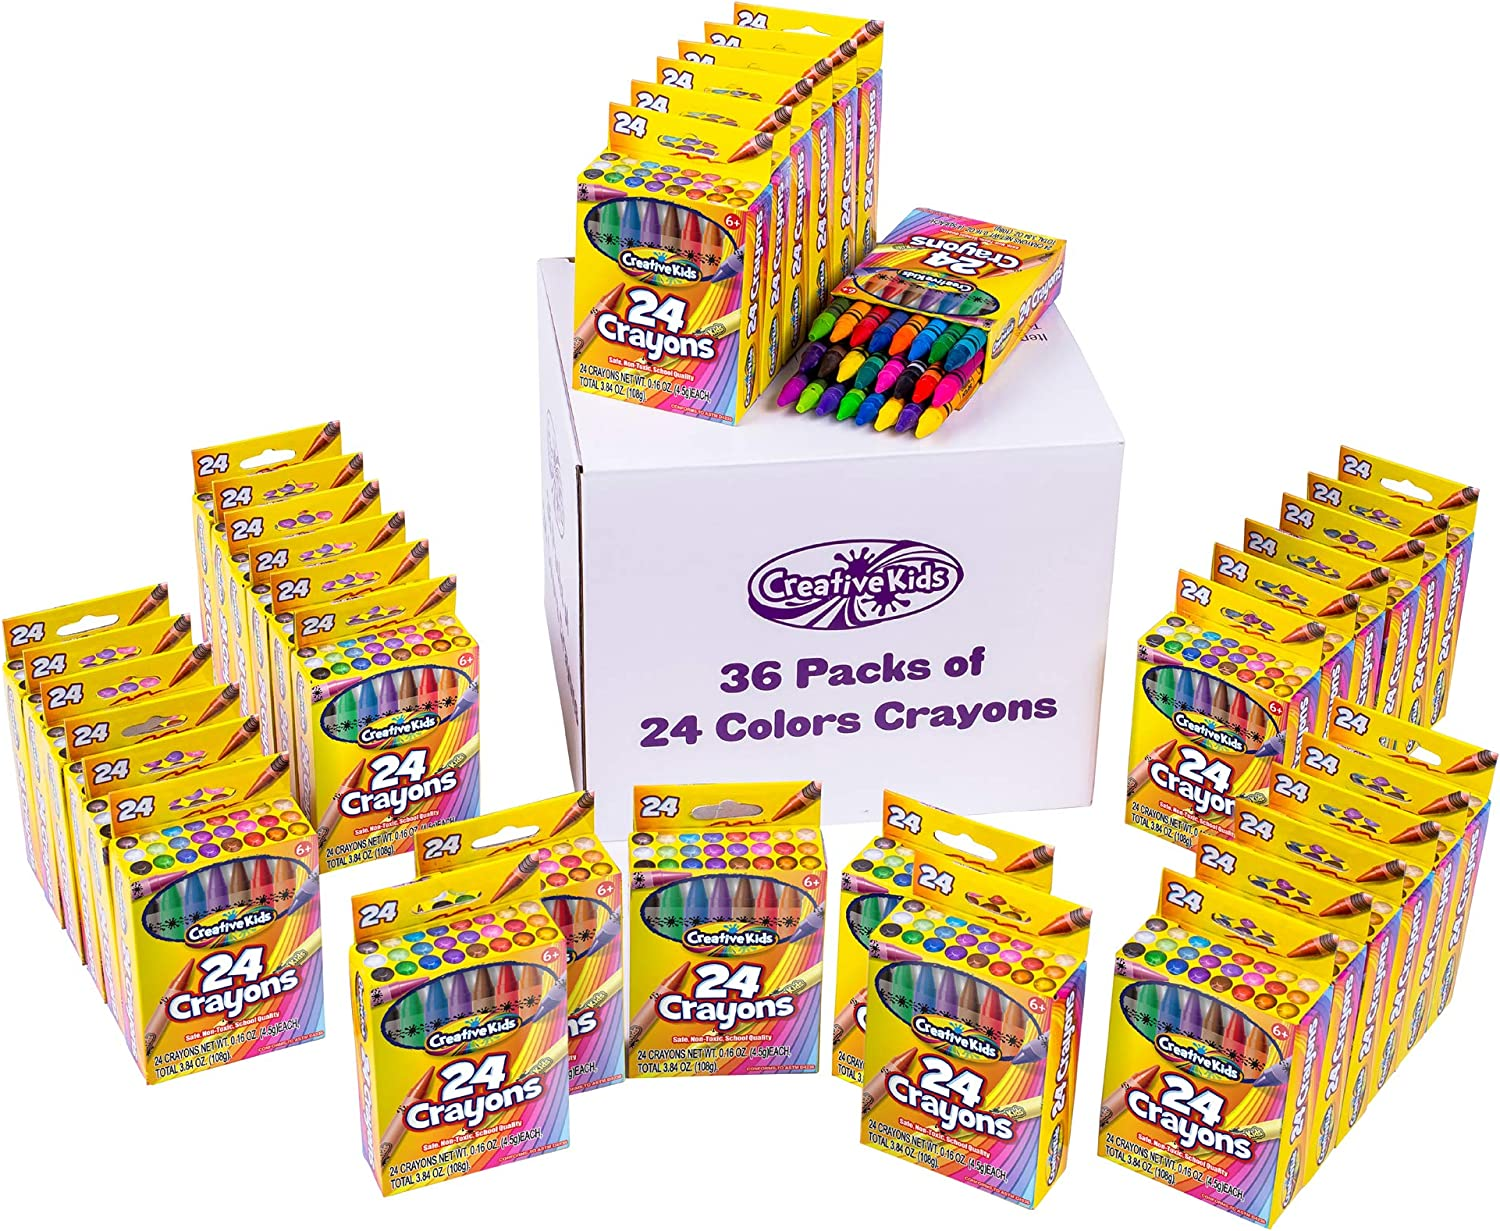 Max 44% OFF Creative Kids 864 Crayons Classpack Assortment favorite Boxes of 36 24 -